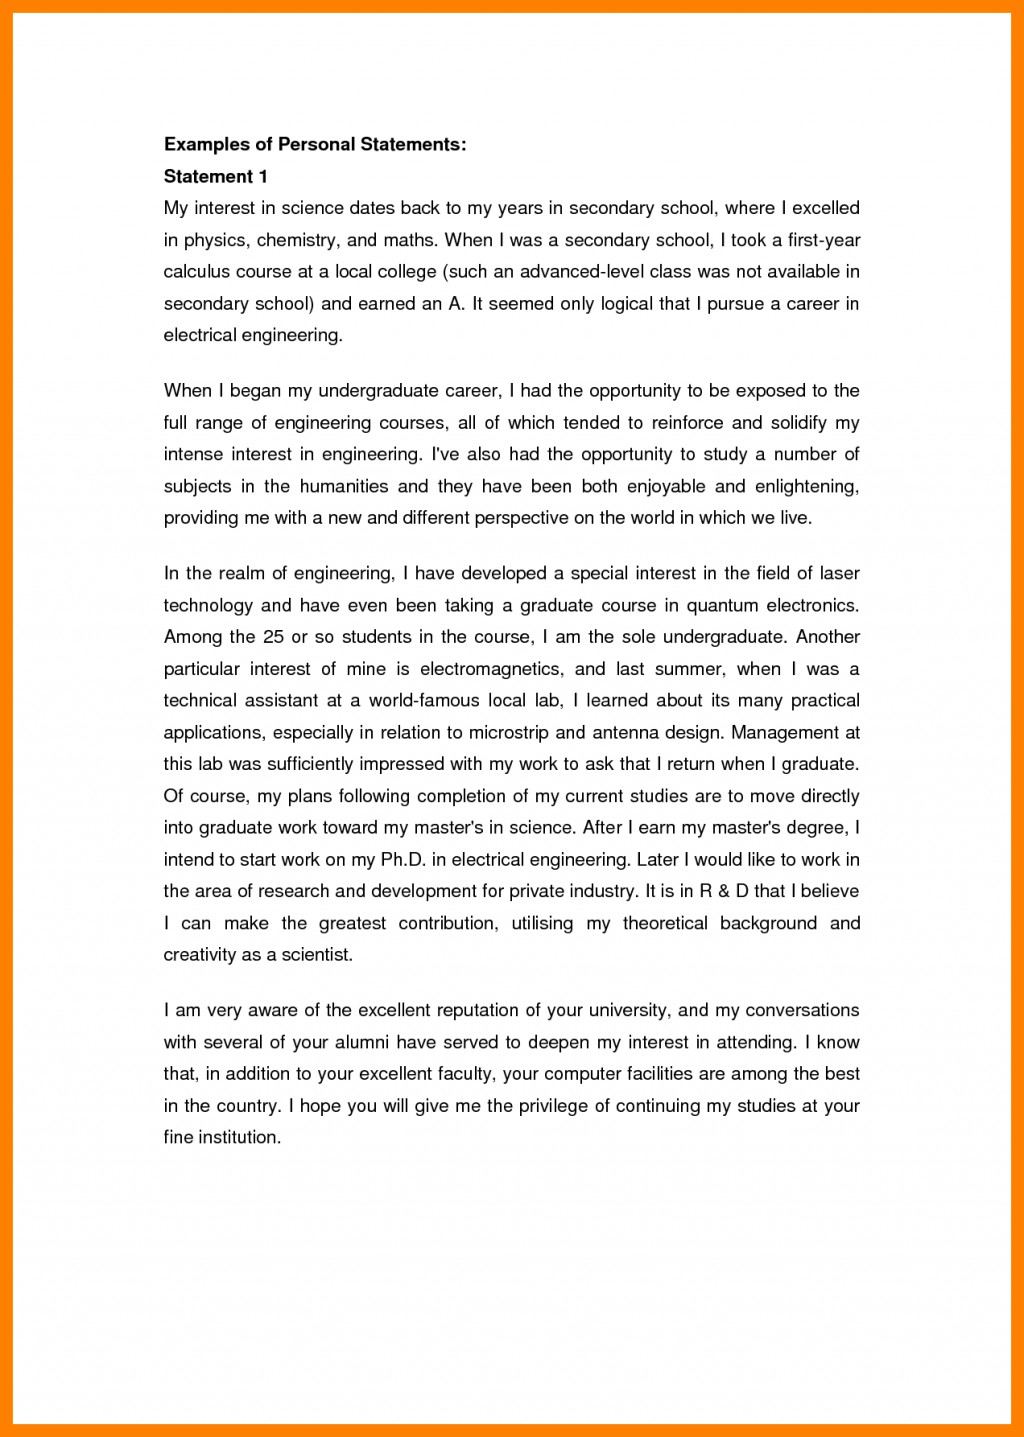 014 High School Essay College Paper Service Amhomeworkvbom Abouting Later Sample Personal Statement Argumentative Persuasive Example Why Should Excellent Start Reasons In The Morning Large